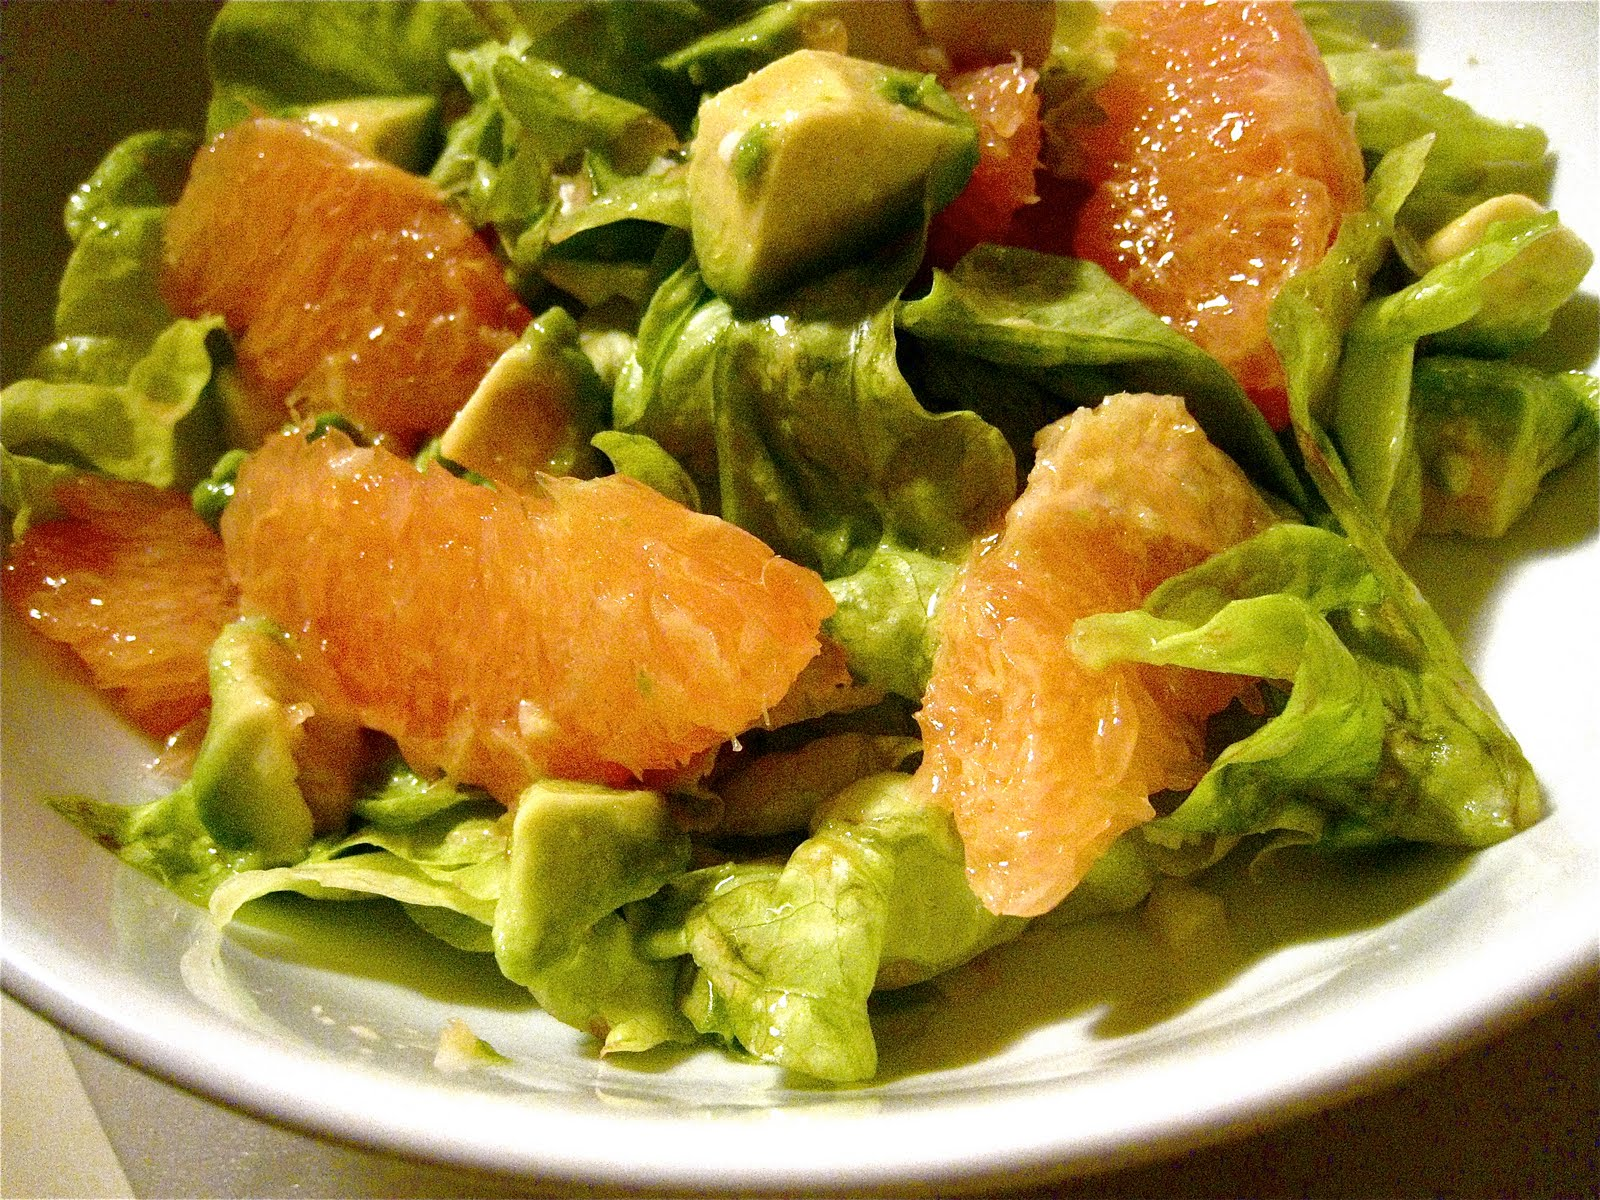 KITCHEN FIDDLER : Avocado Grapefruit Salad To Win Your Heart